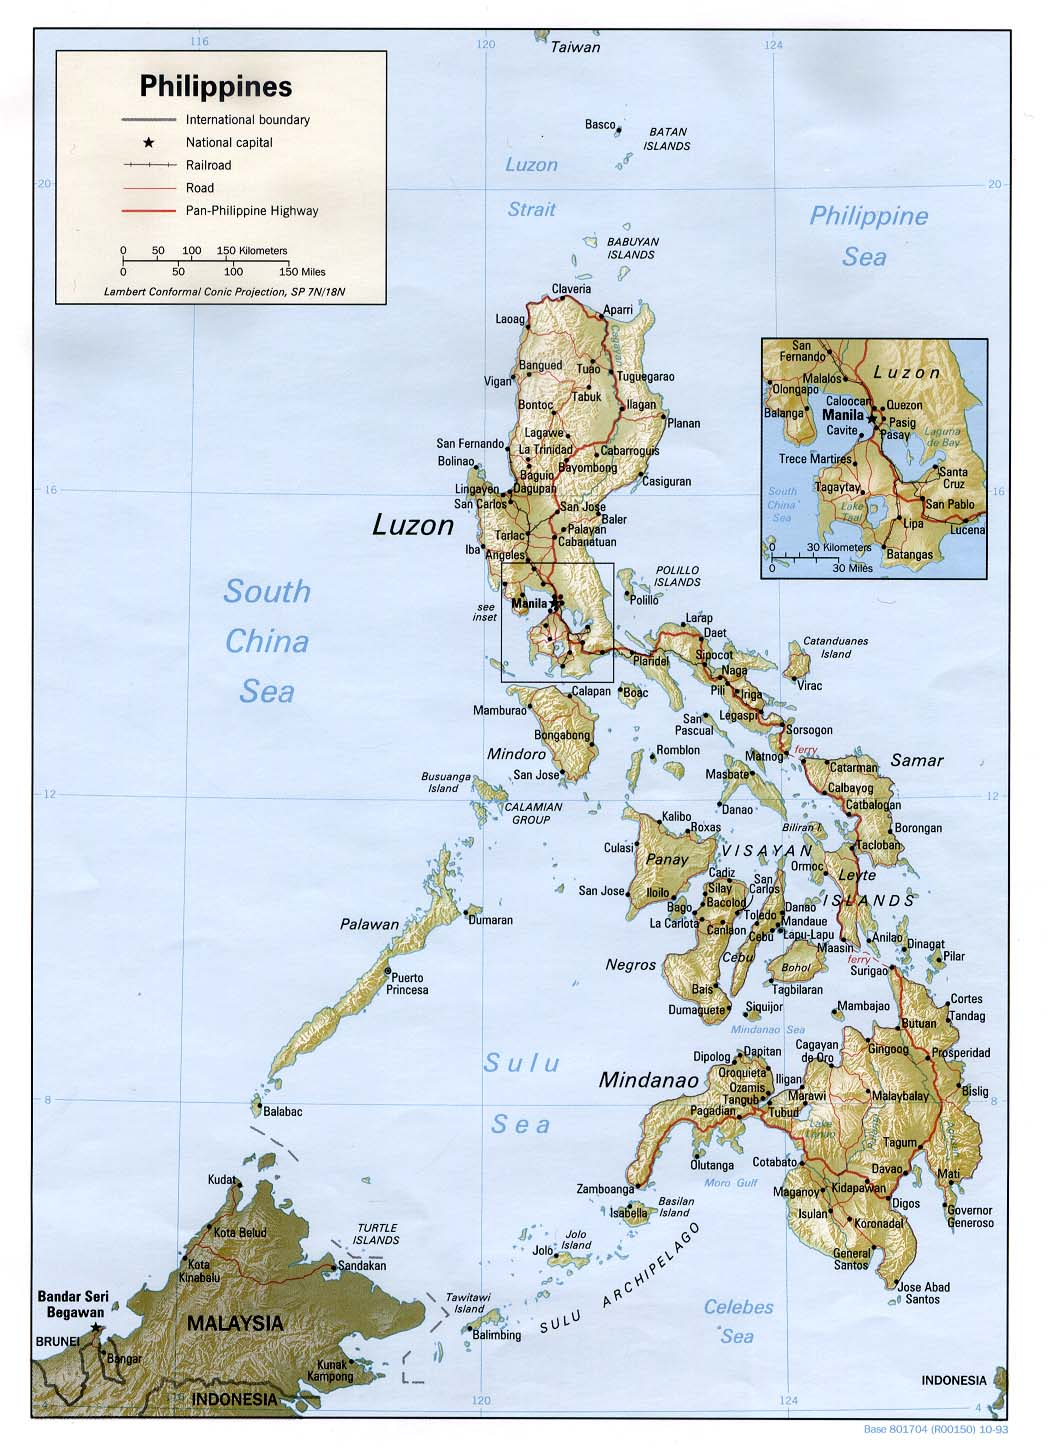 Philippines Maps - Perry-Castañeda Map Collection - UT Library Online